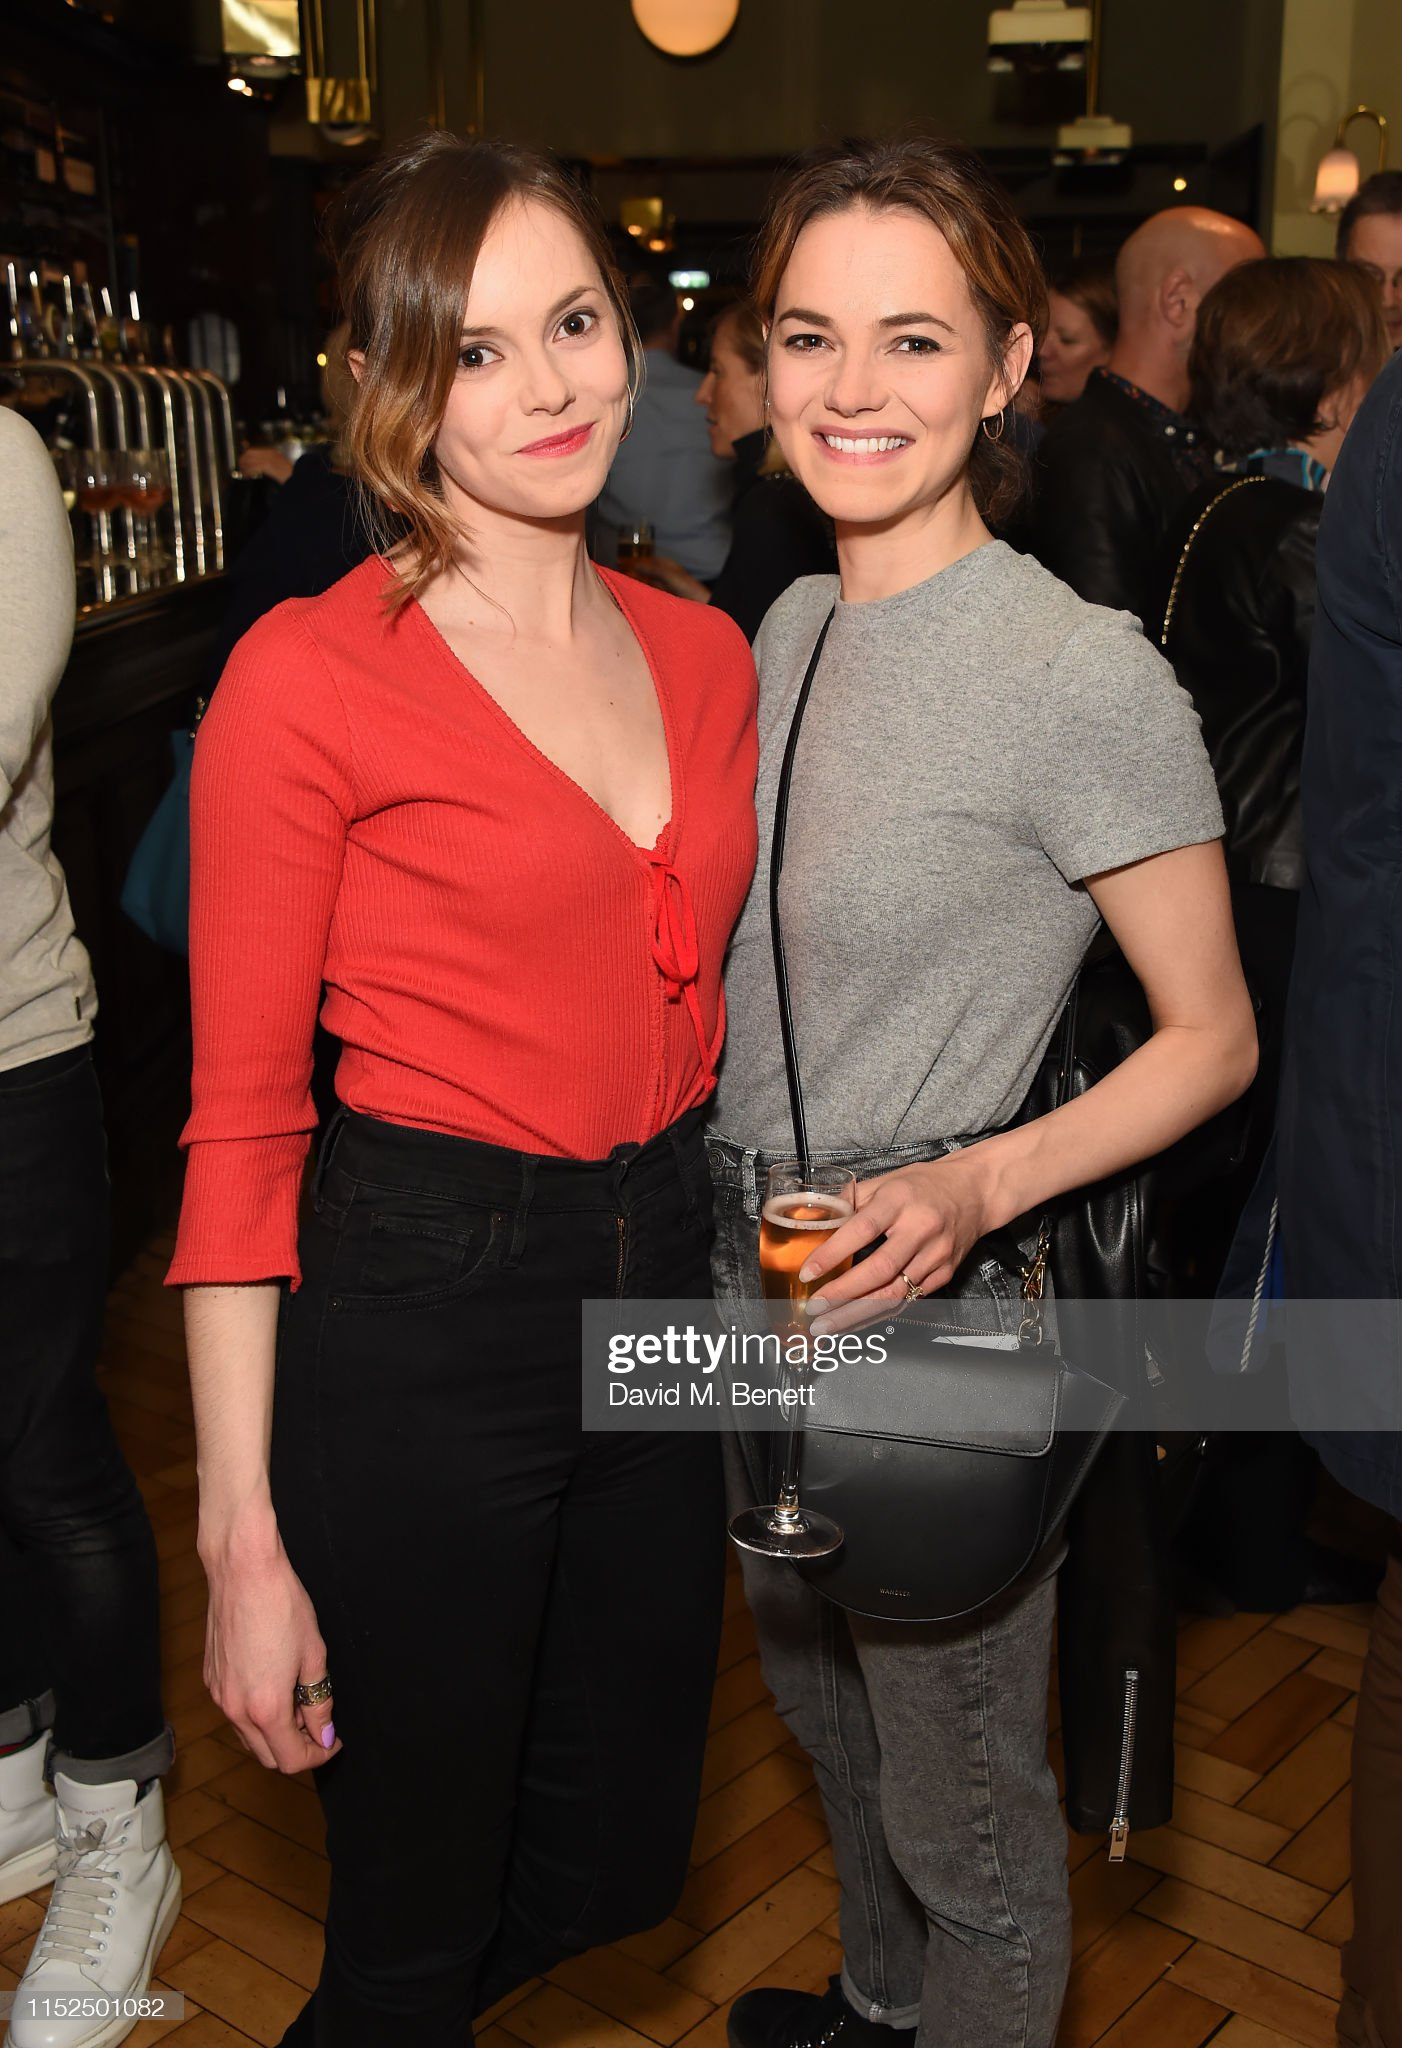 hannah-tointon-and-kara-tointon-attend-the-press-night-after-party-picture-id1152501082?s=2048x2048